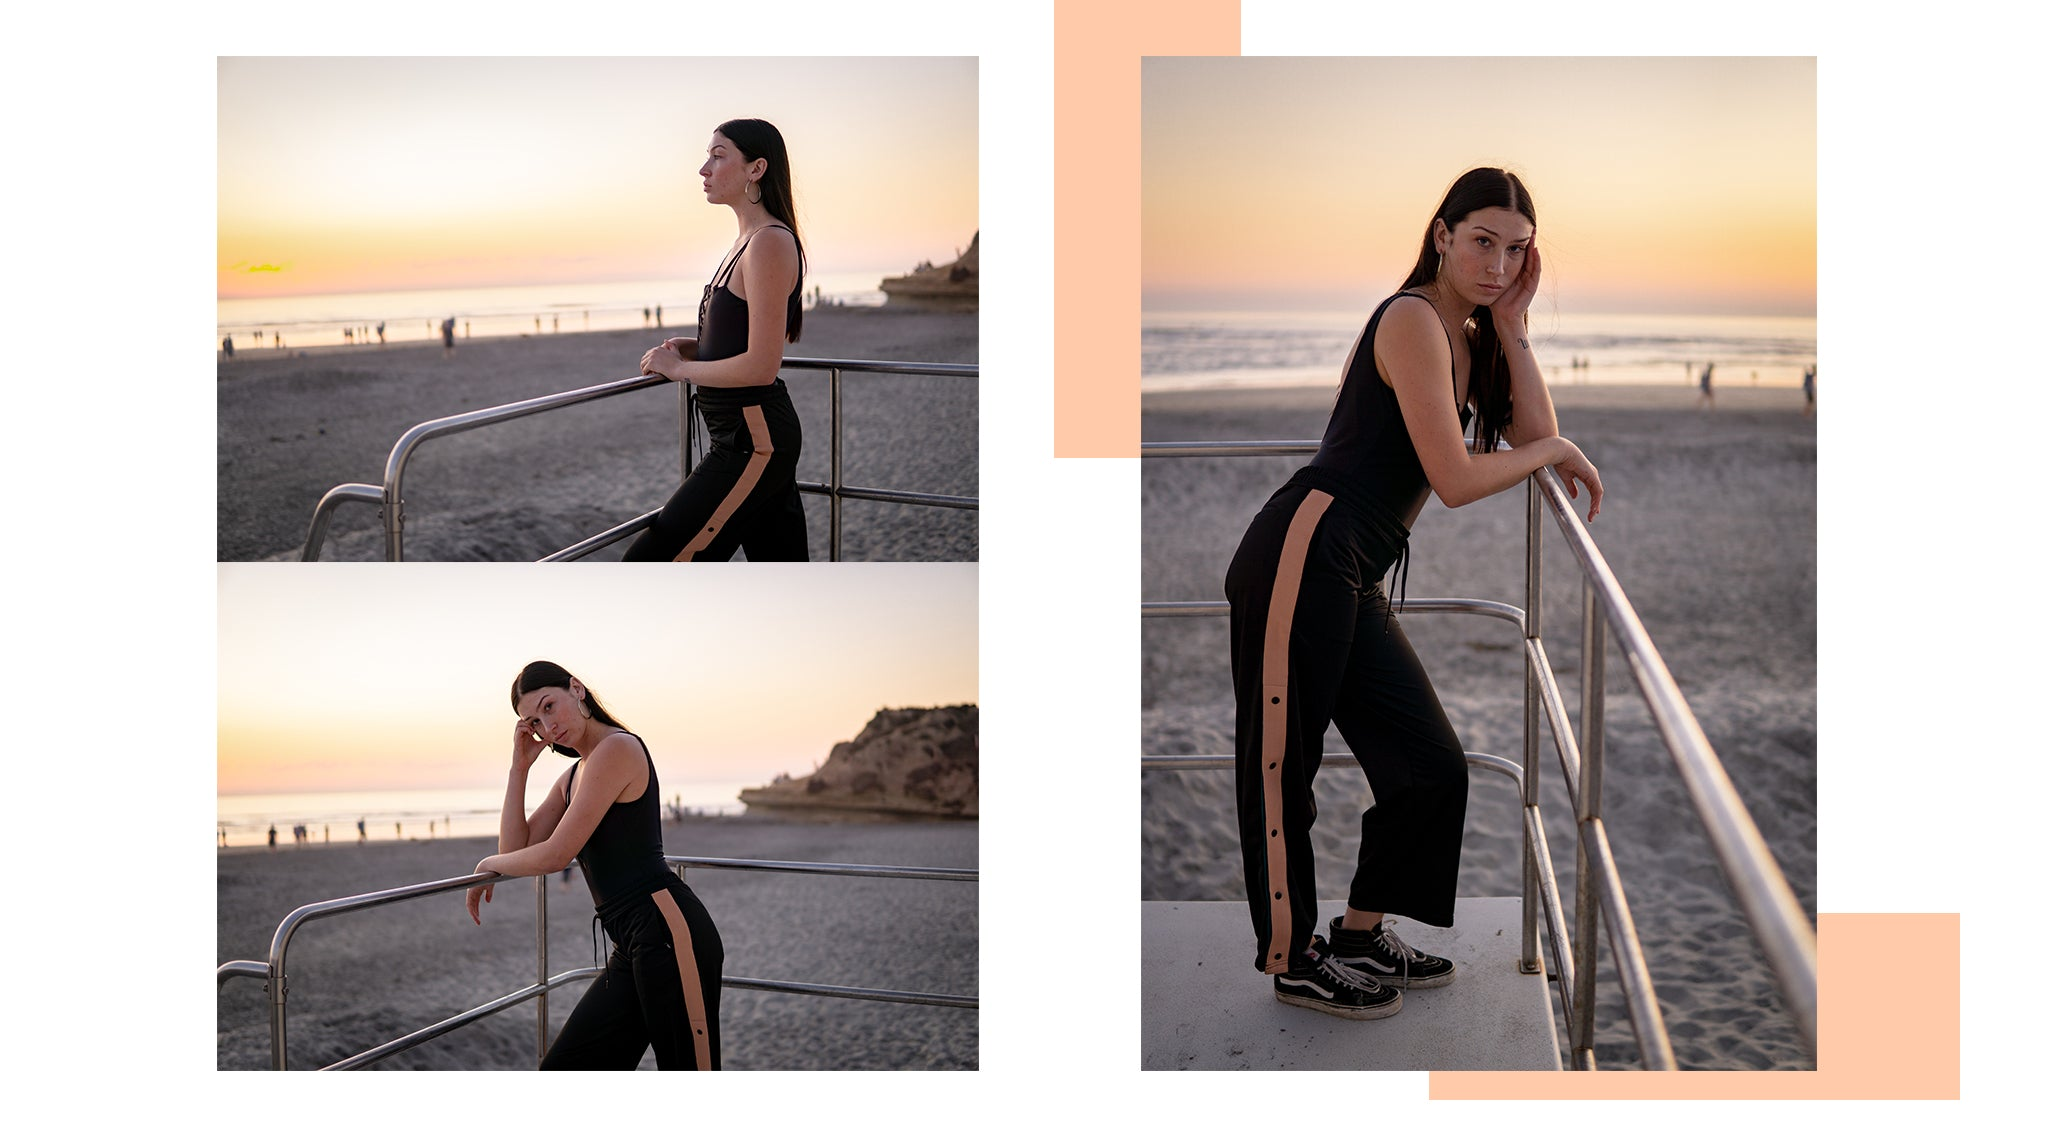 Del Mar Beach Sunset Photoshoot